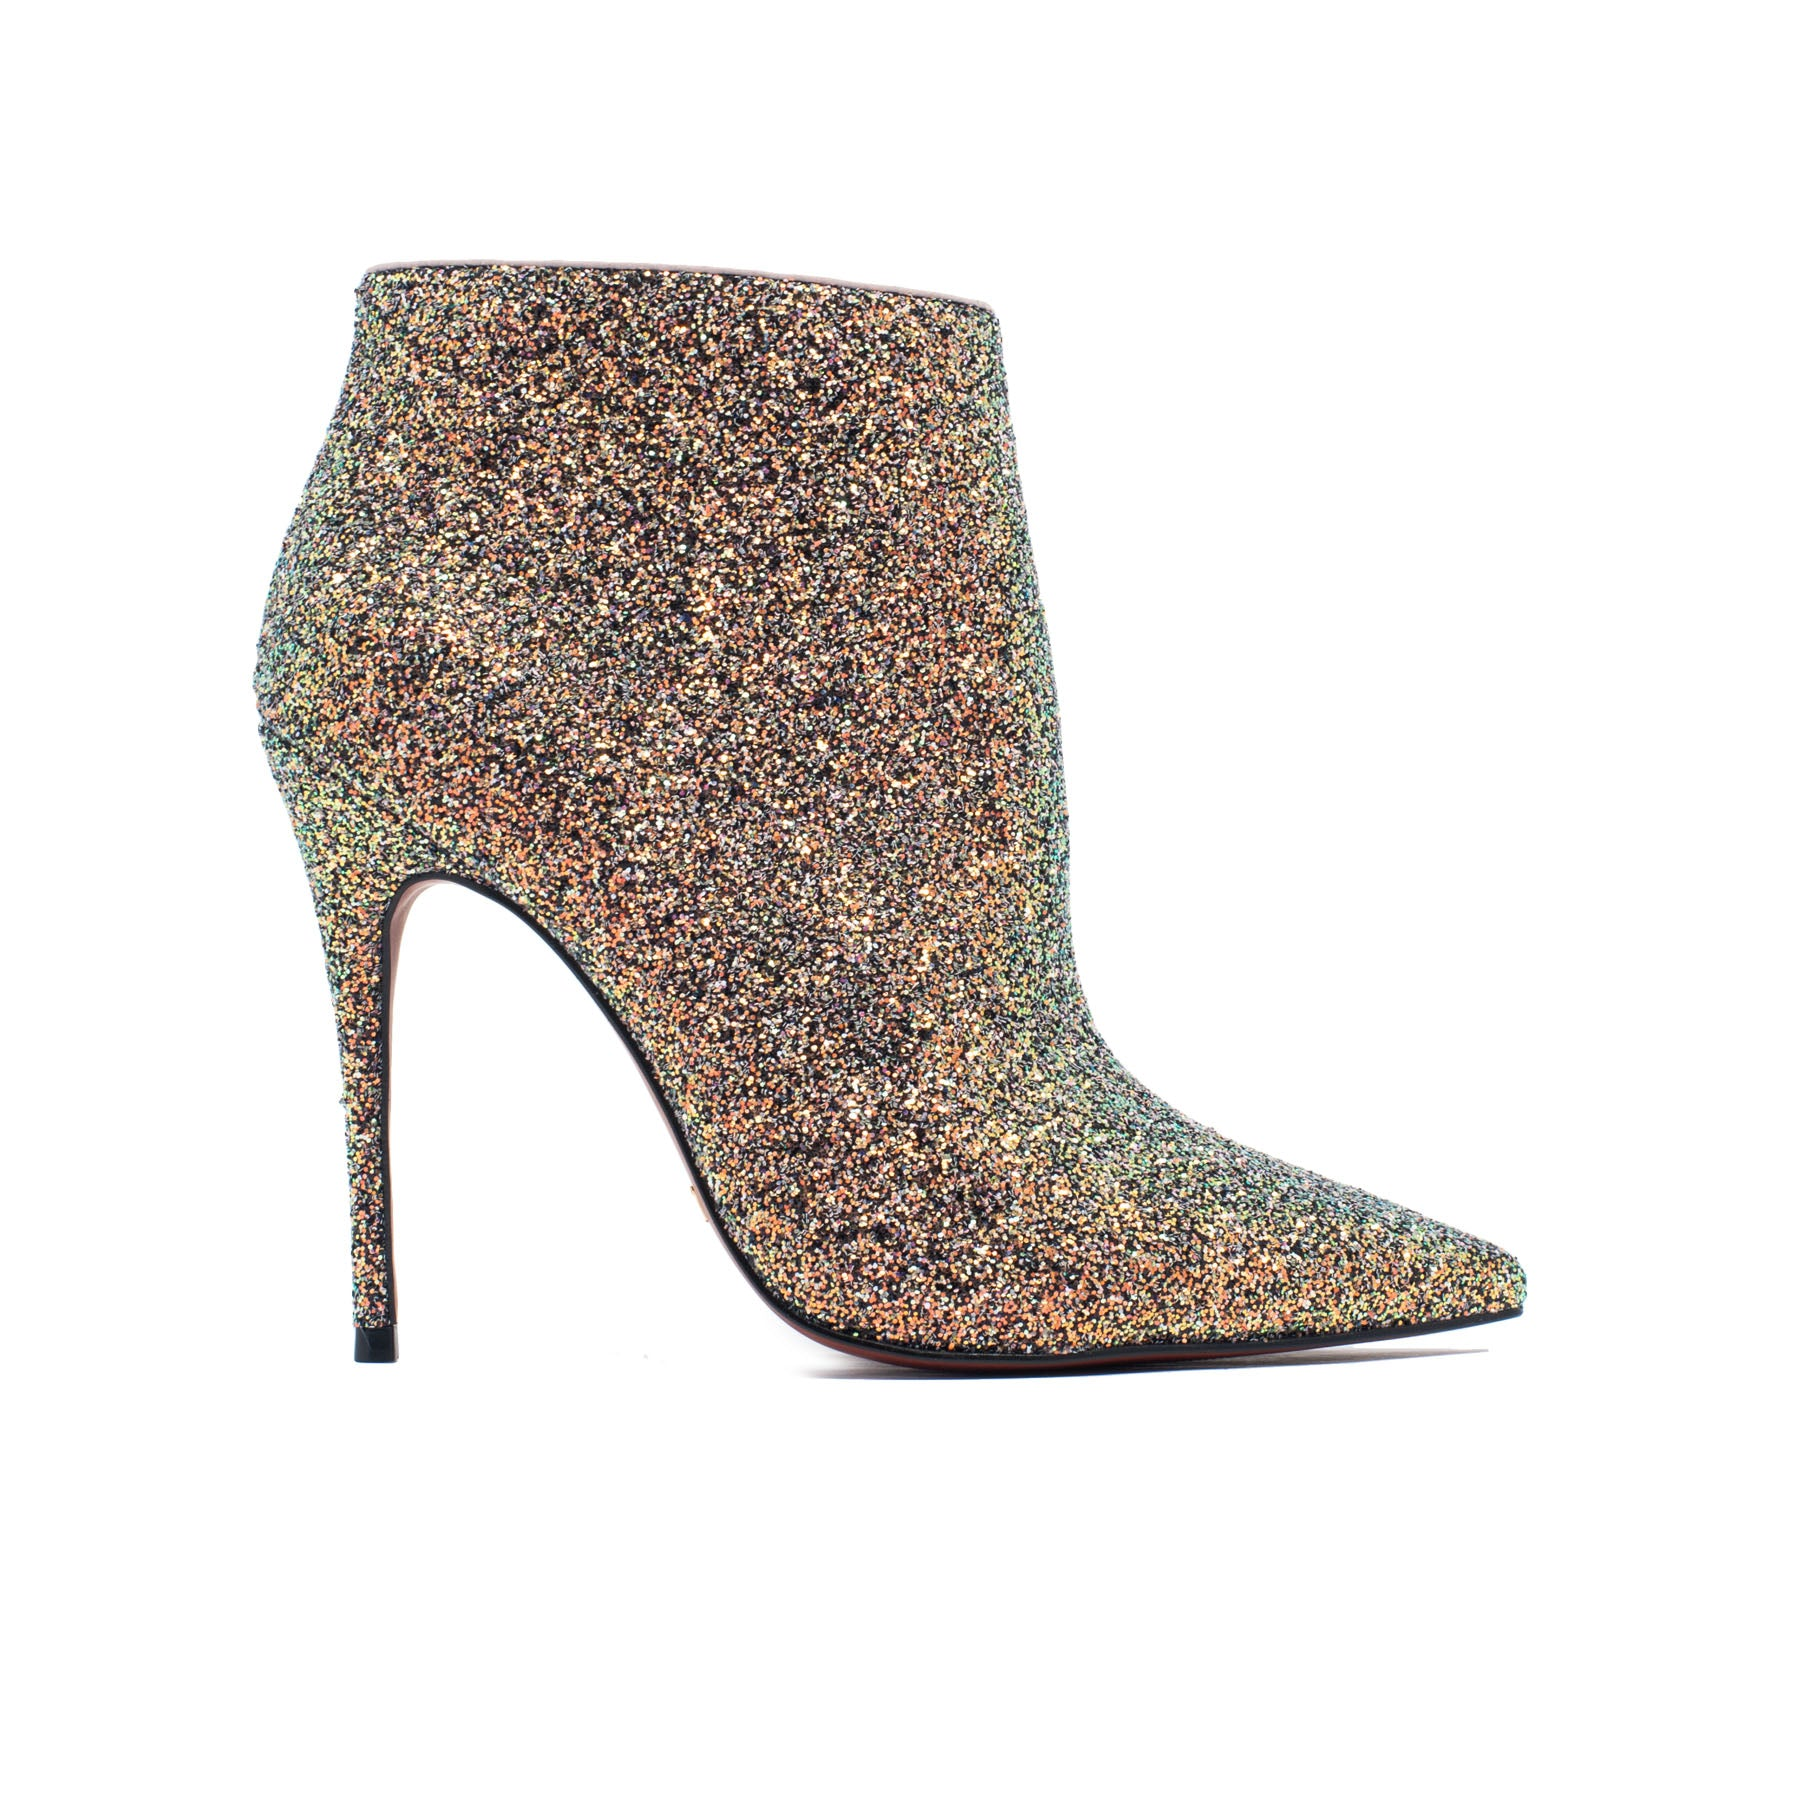 Lucia Champagne Glitter Ankle Boots